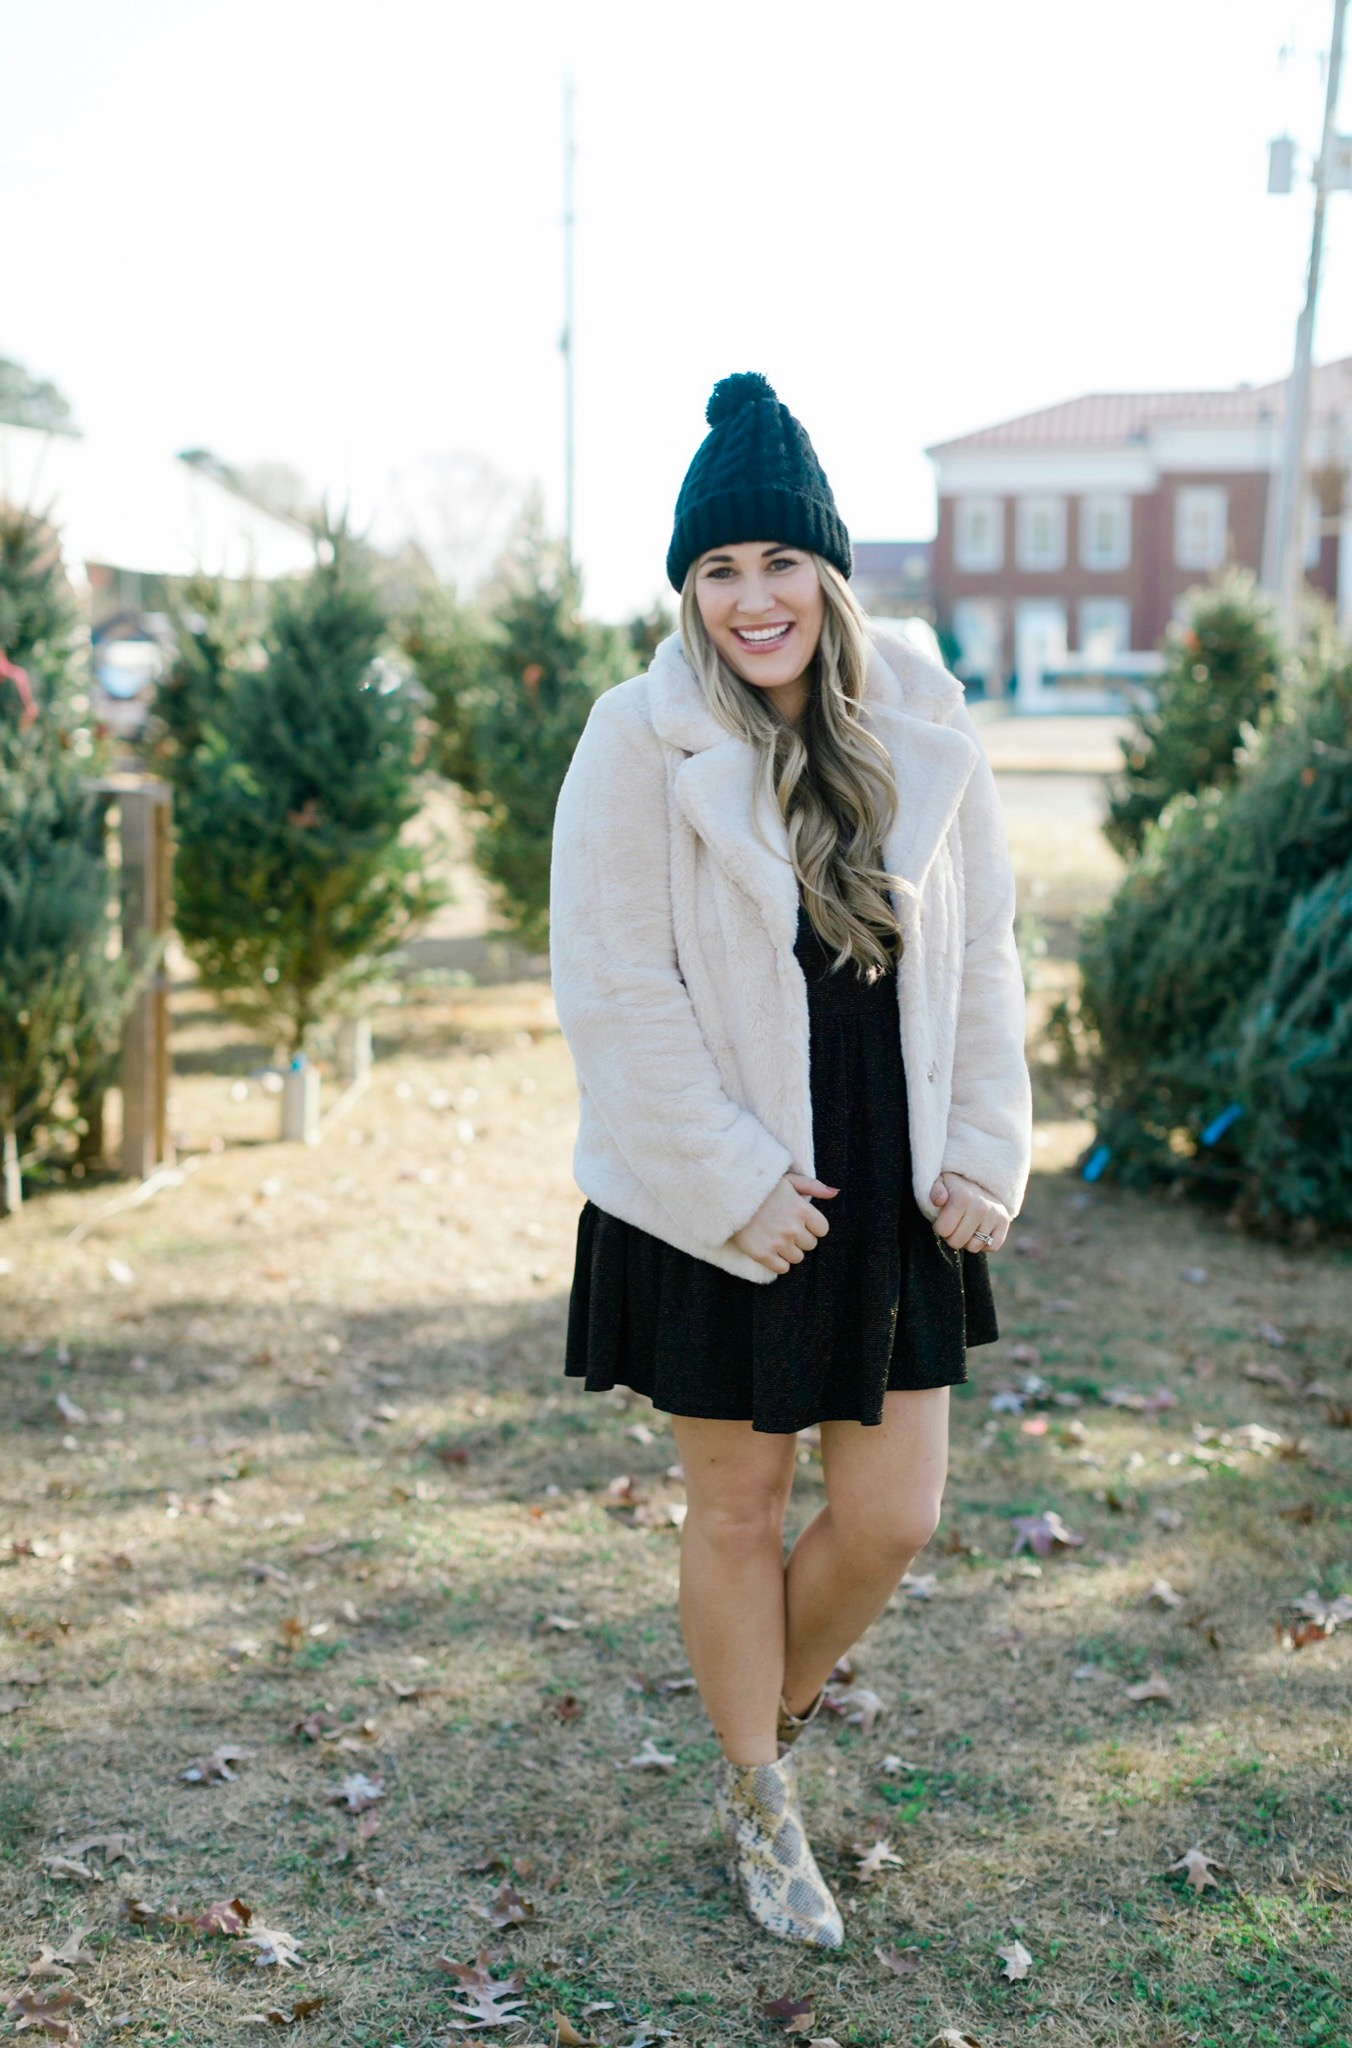 New Years Eve Outfits featured by top Memphis fashion blogger, Walking in Memphis in High Heels: Image of a woman wearing an RBBK holiday dress, Express faux fur coat, Tasha pom beanie, and Red Dress ankle booties